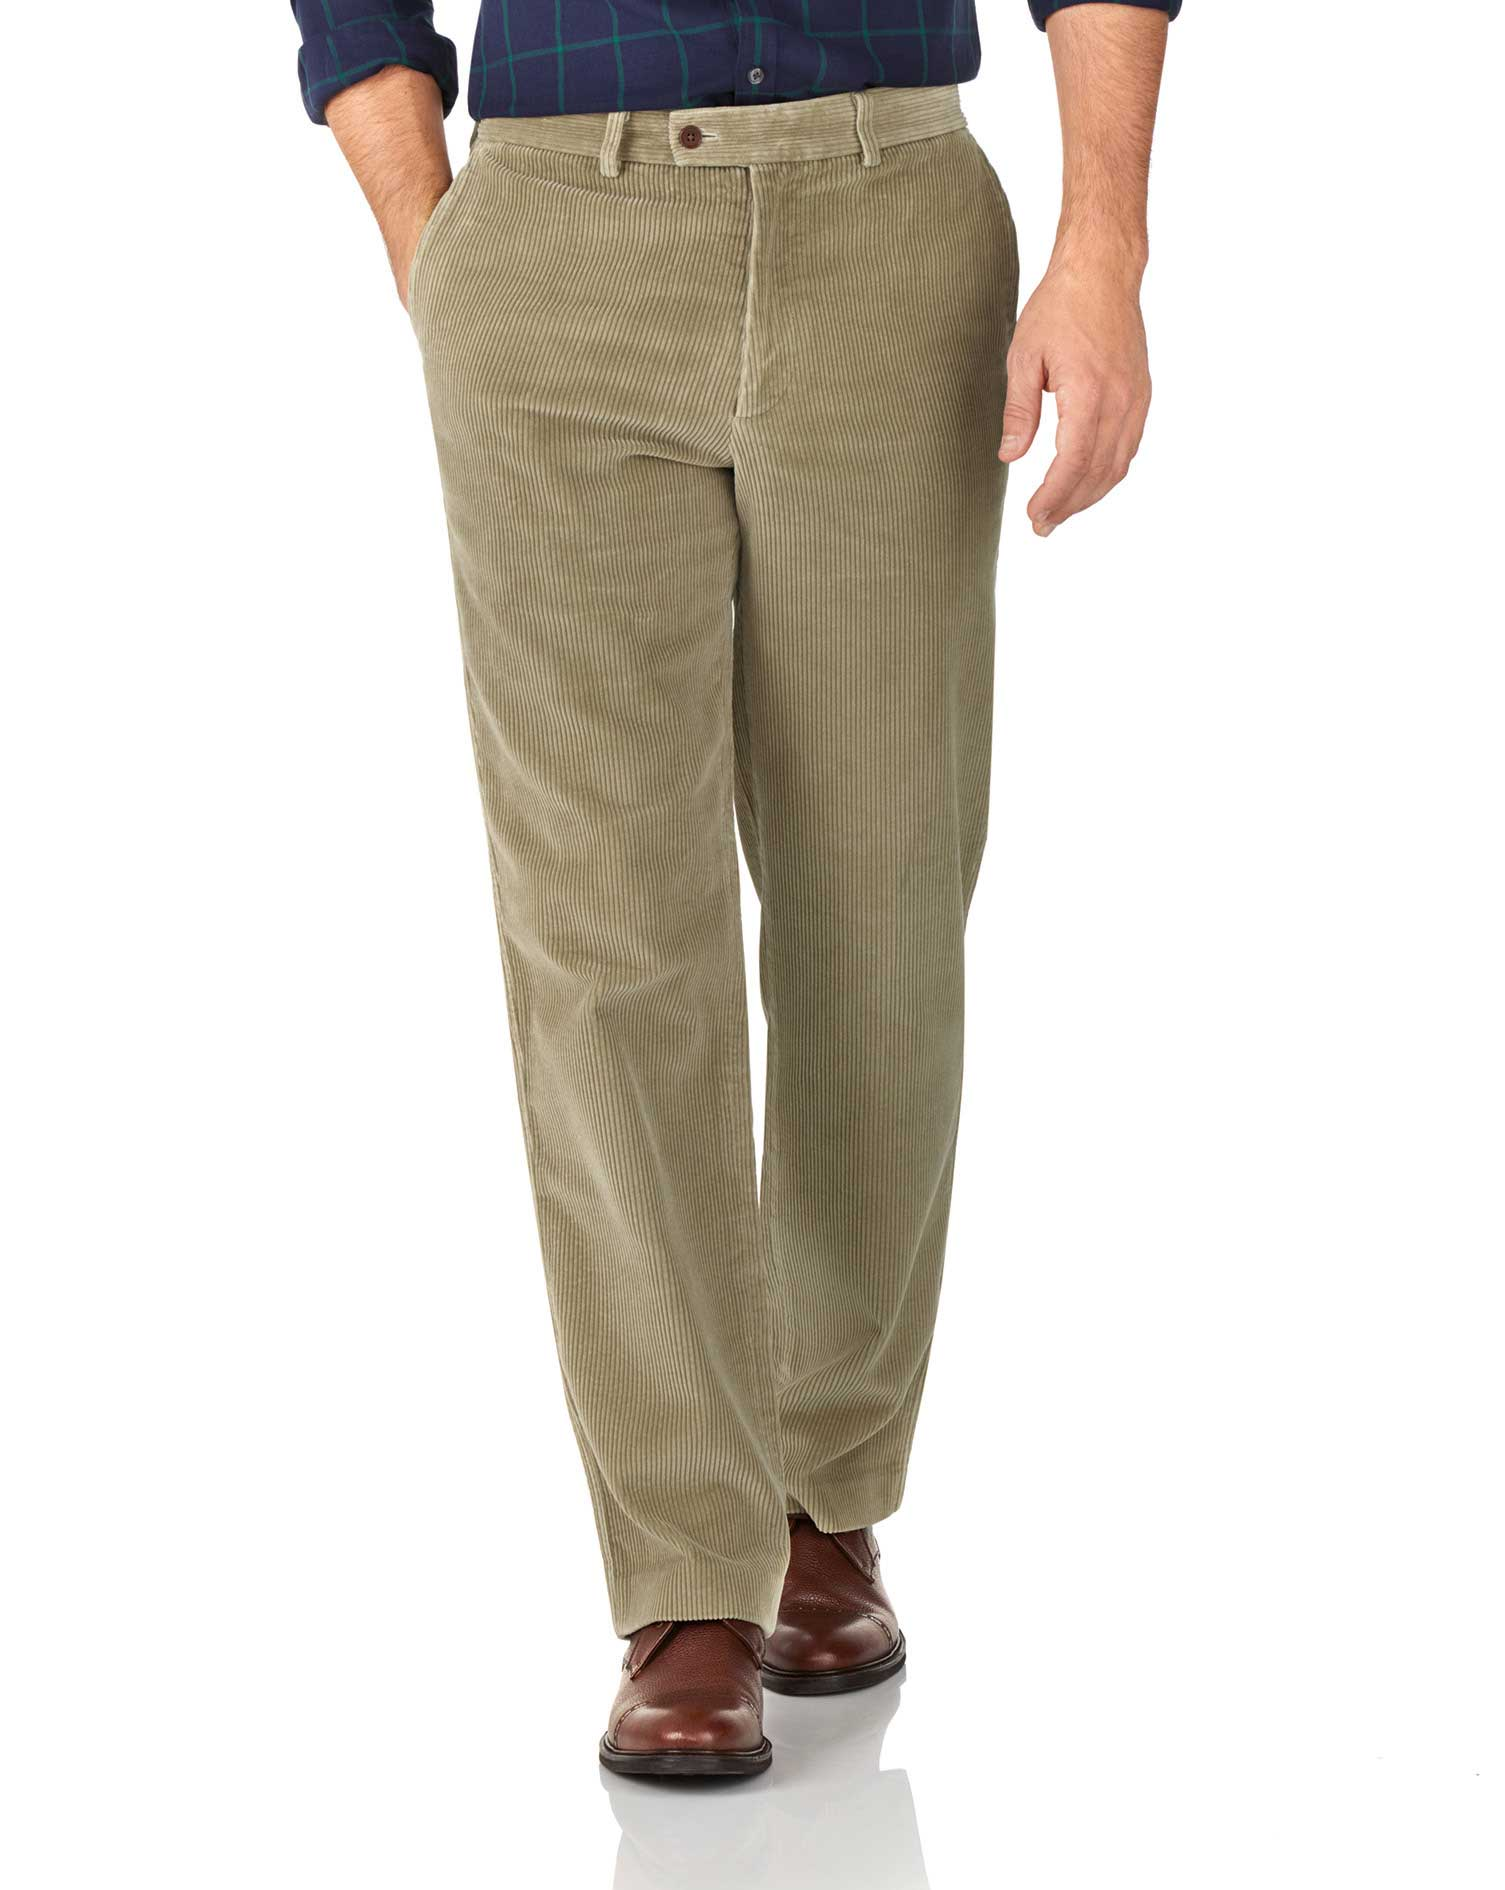 Light Brown Classic Fit Jumbo Cord Trousers Size W40 L34 by Charles Tyrwhitt